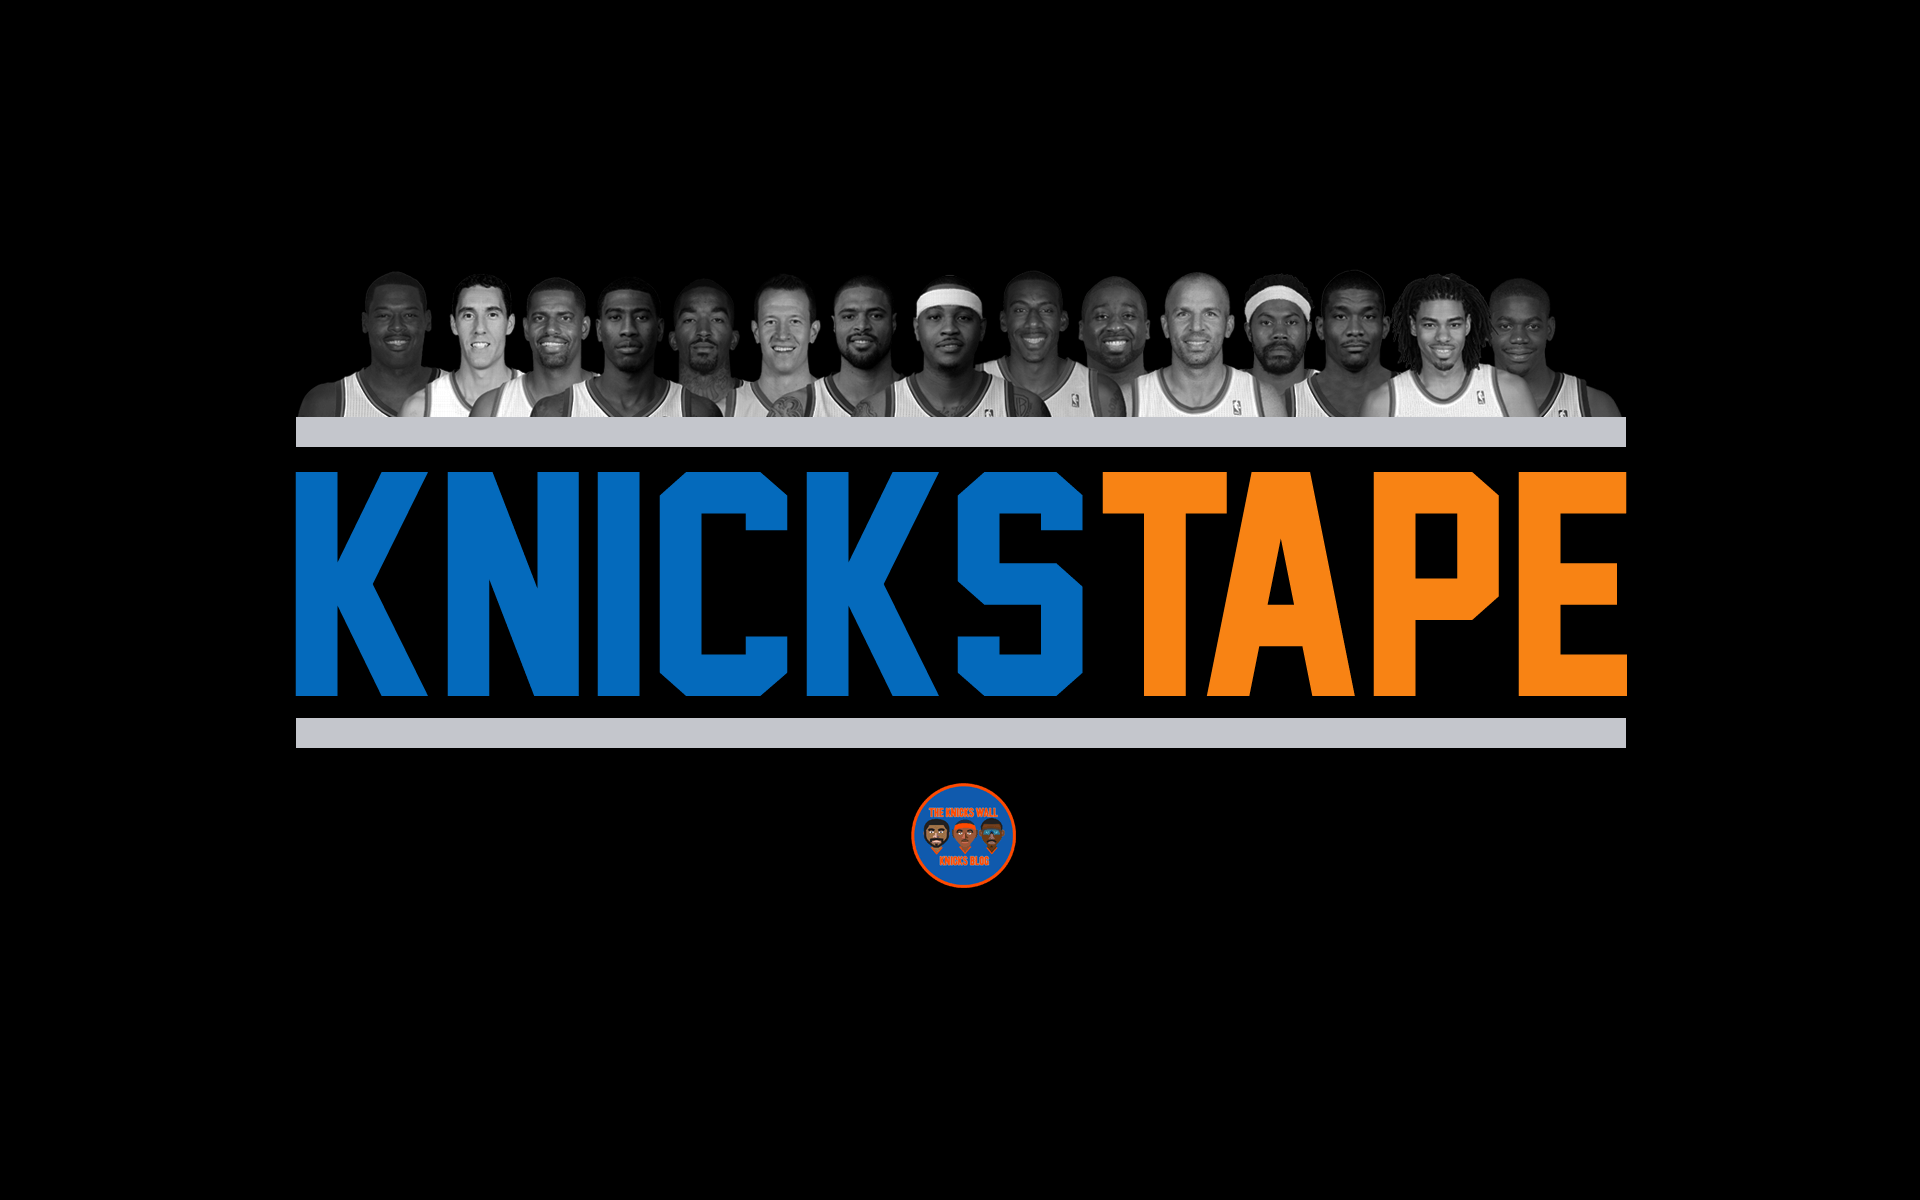 KnicksTape Wallpapers